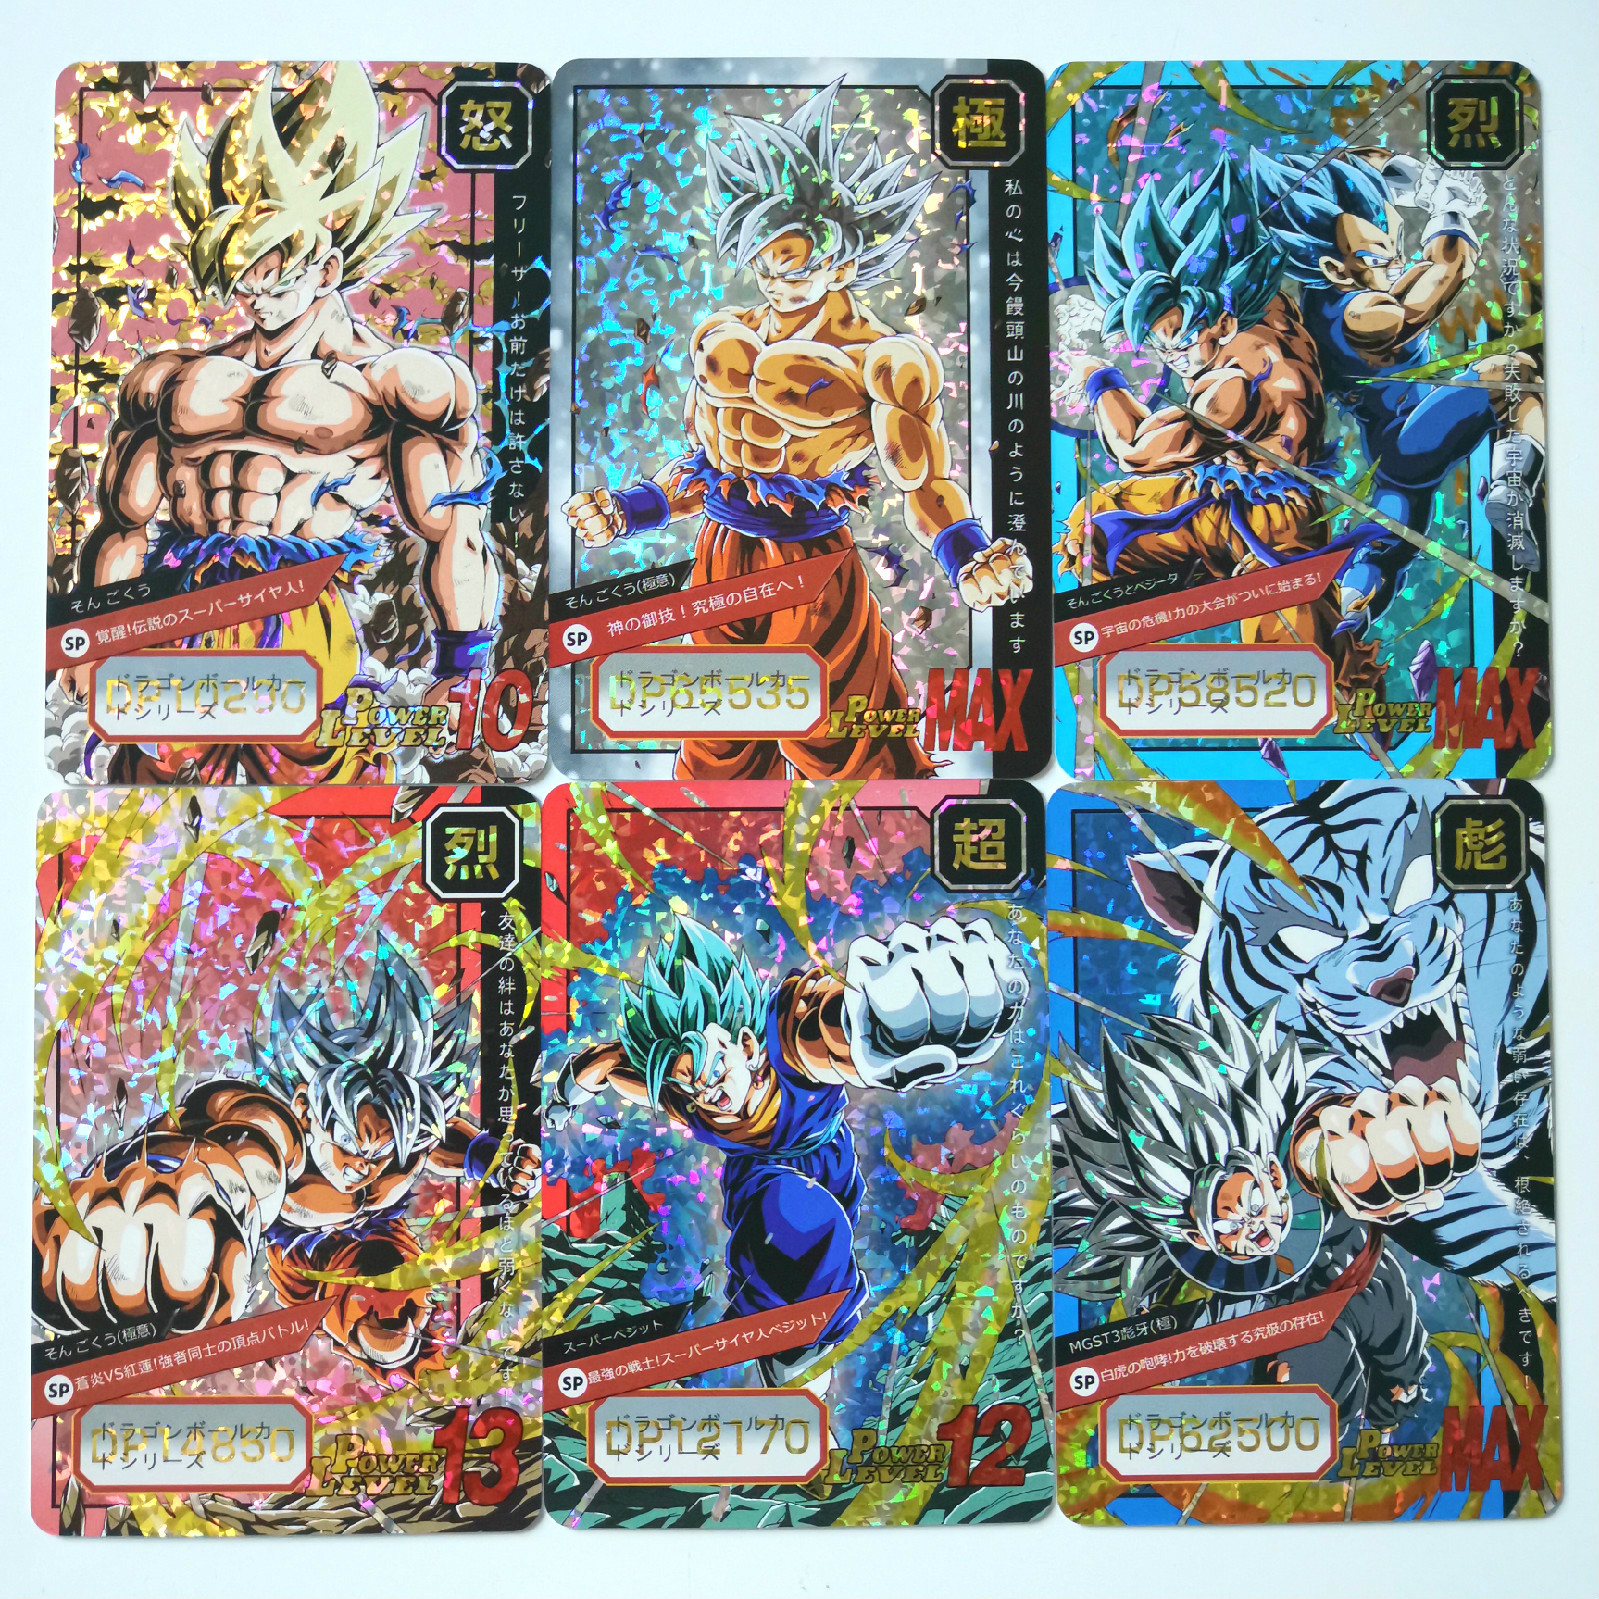 24pcs Super Dragon Ball Z Fine Limited Card Heroes Battle Ultra Instinct Goku Vegeta Game Collection Cards image